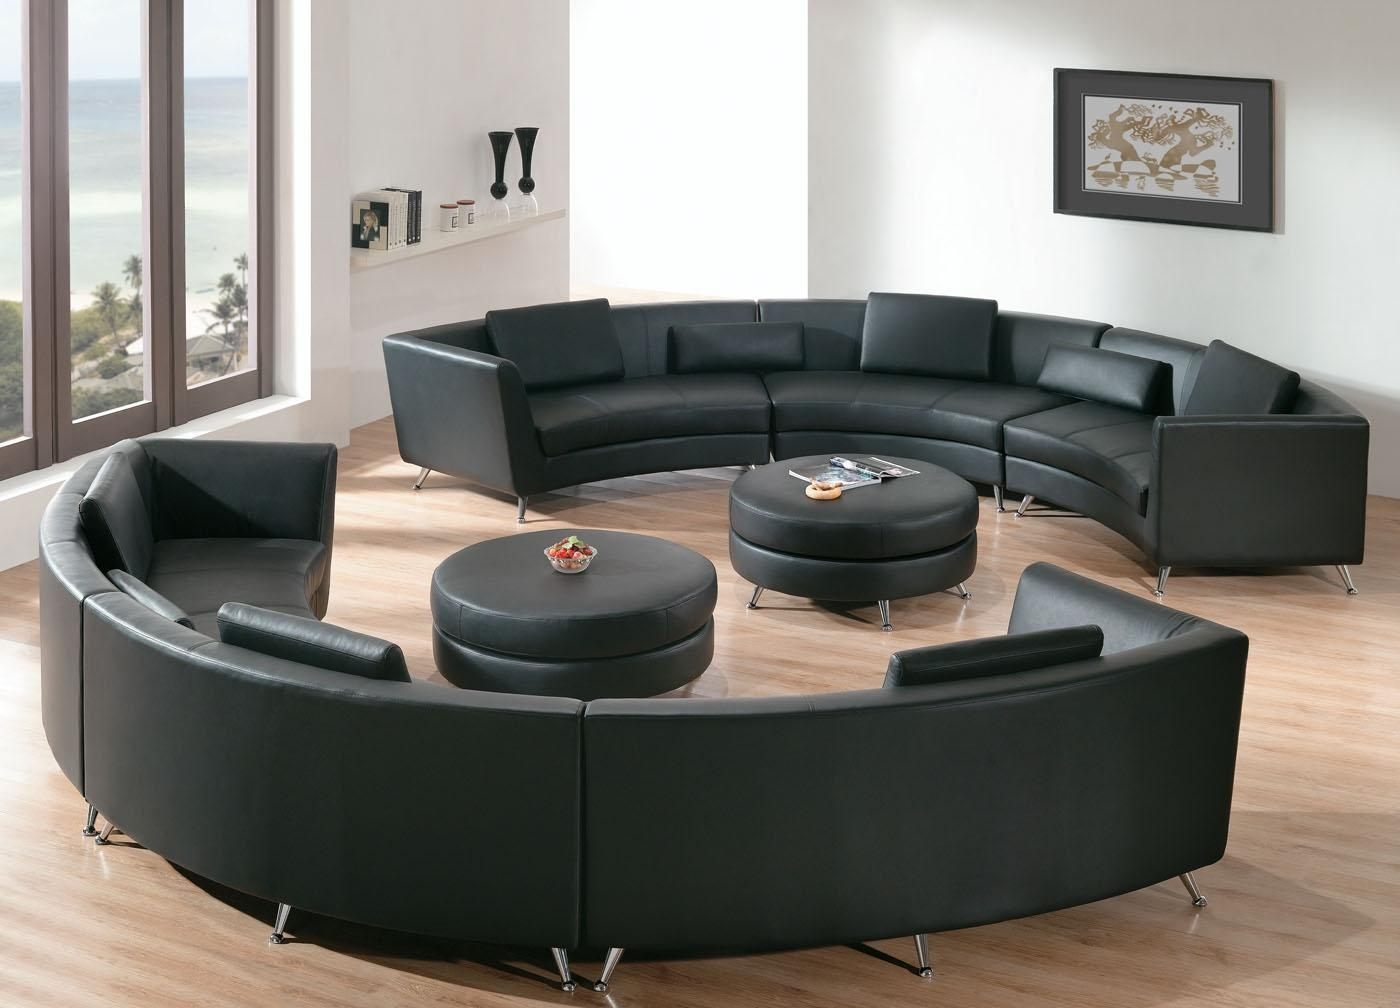 Sofas Center : Sofas Center Roundl Sofa Rare Photos Ideas Semi In Semi Sofas (Image 18 of 20)